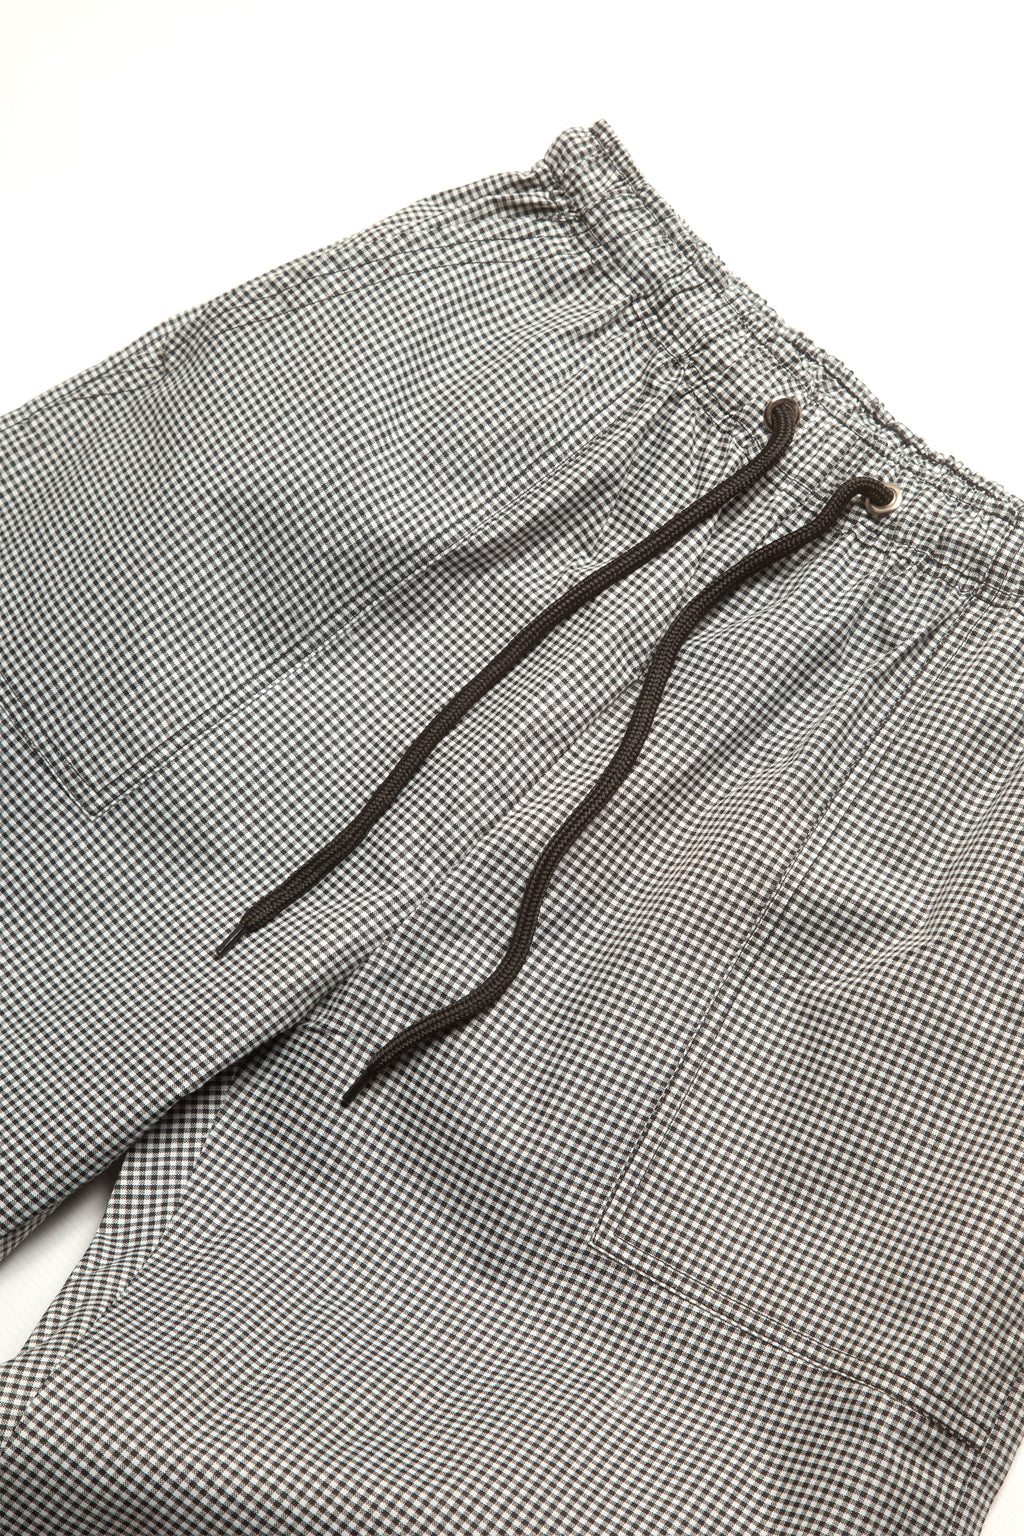 Service Works - Trade Chef Pants - Gingham